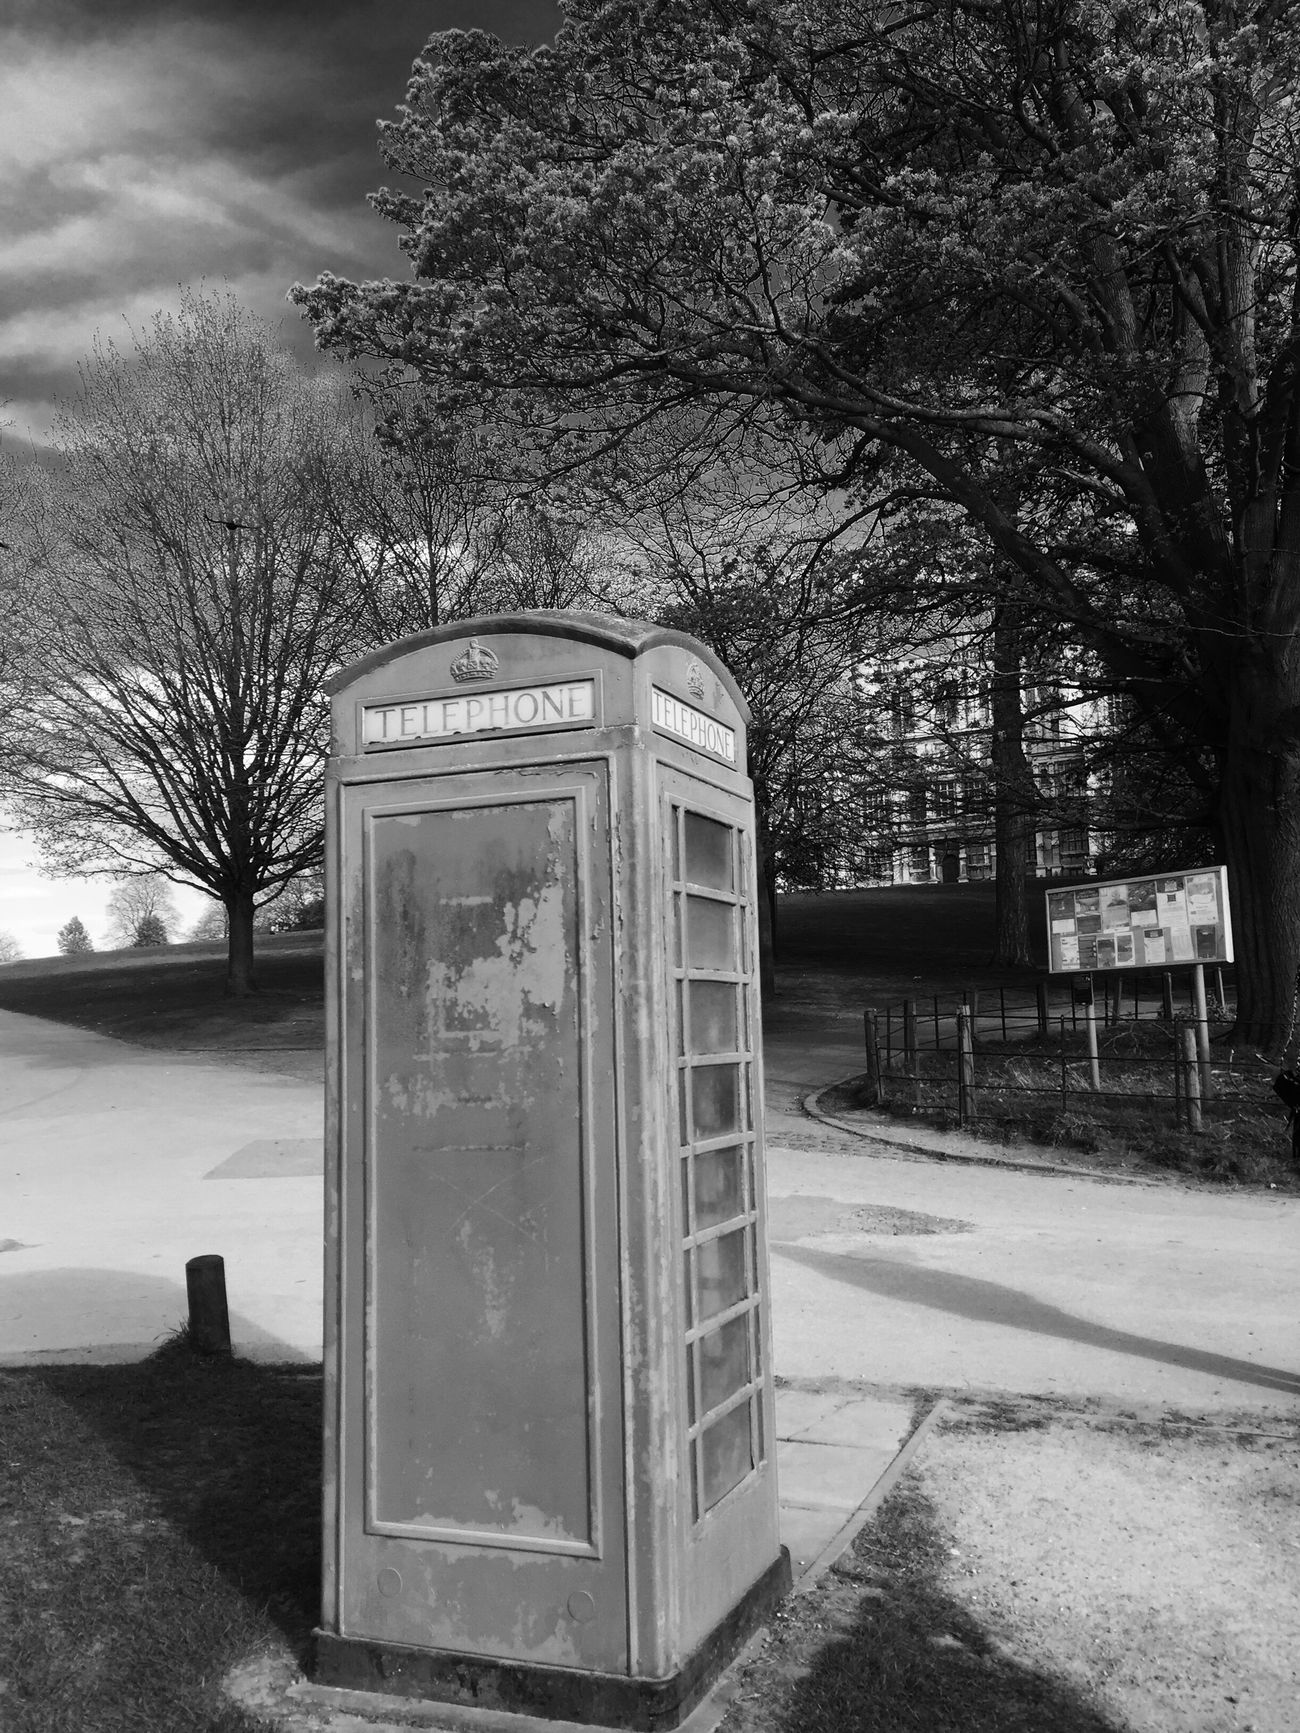 Communication Telephone Booth Pay Phone Old-fashioned Tree Outdoors Telephone Technology Architecture Sky Blackandwhite Blackandwhite Photography Red Phone Boxes Nottingham